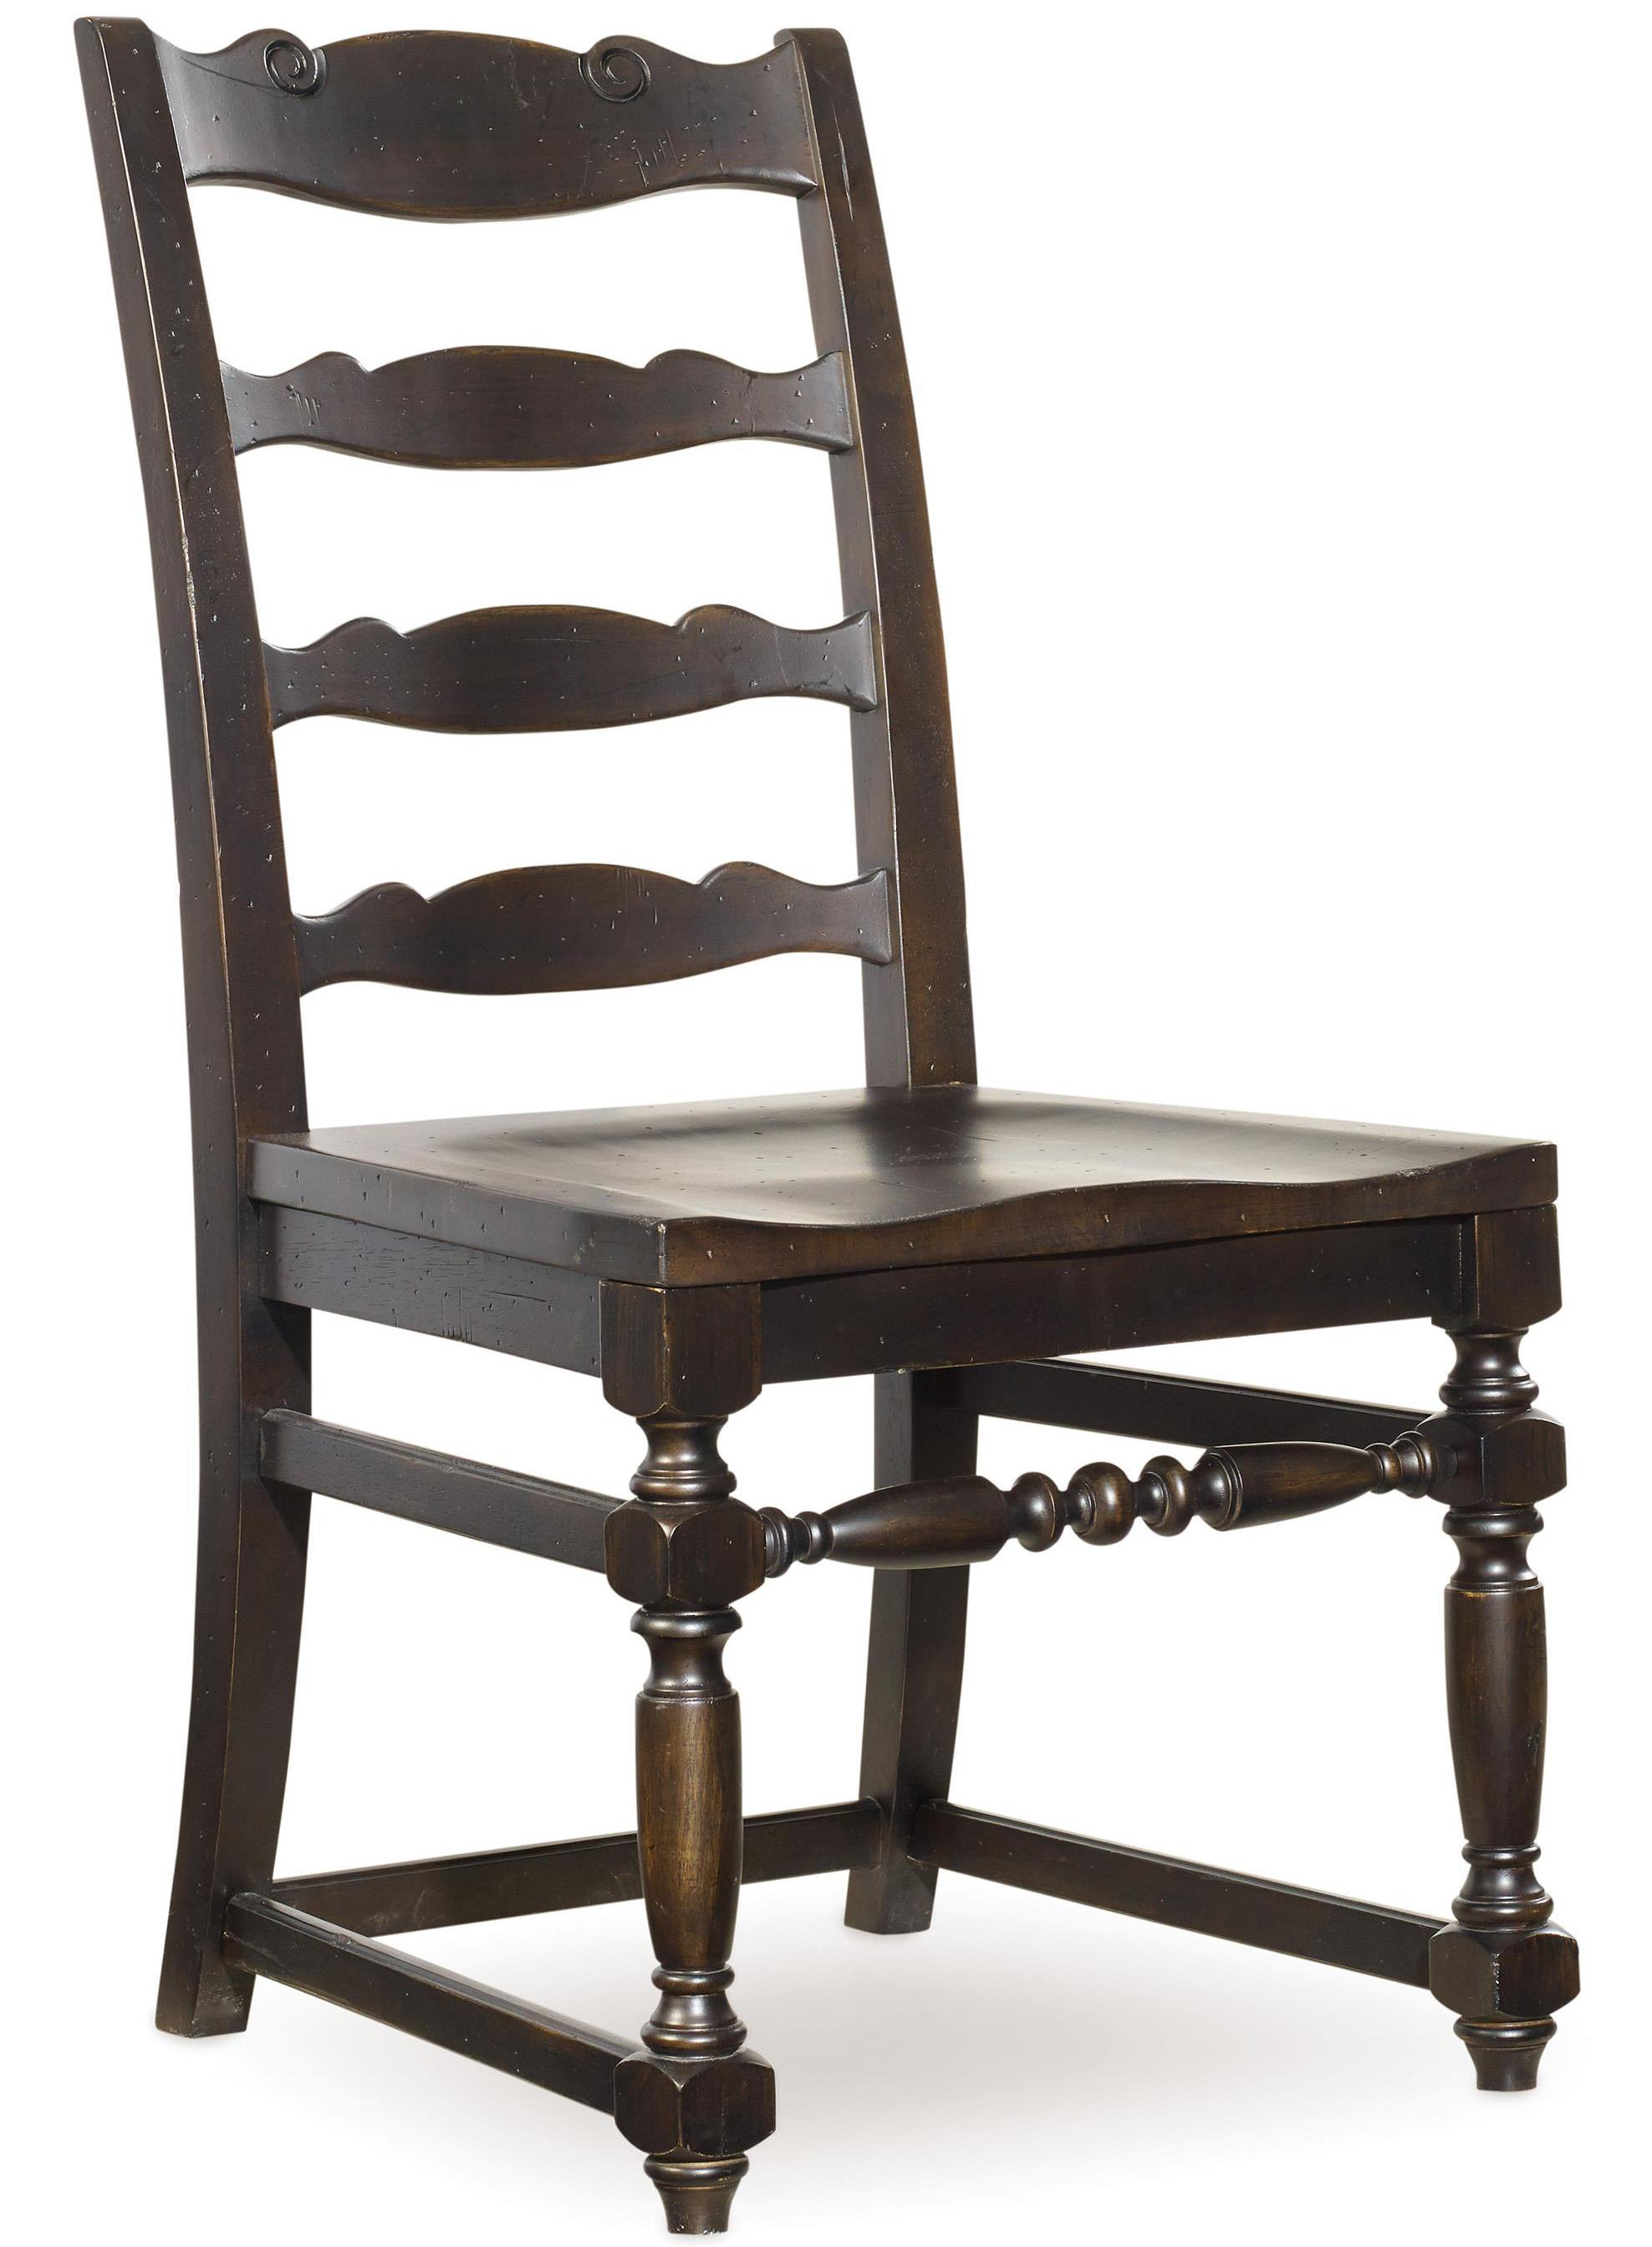 Hooker Furniture Treviso Ladderback Side Chair - Item Number: 5374-75310